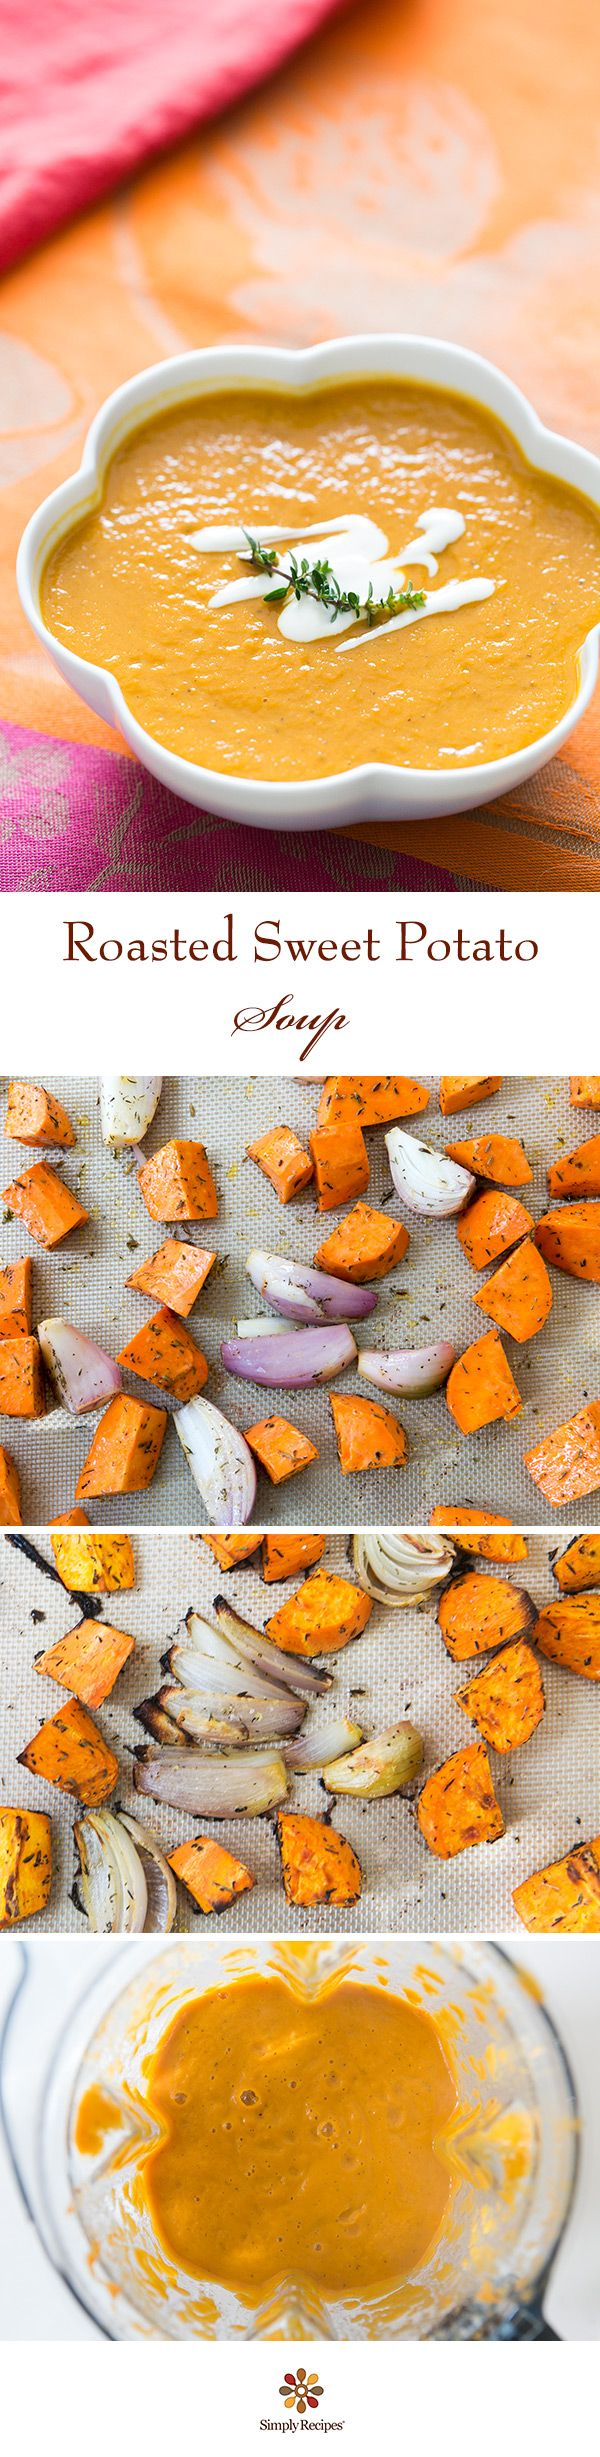 Roasted Sweet Potato Soup #Roasted #SweetPotato #Soup #Delicious #Dinner #Fall #Beautiful